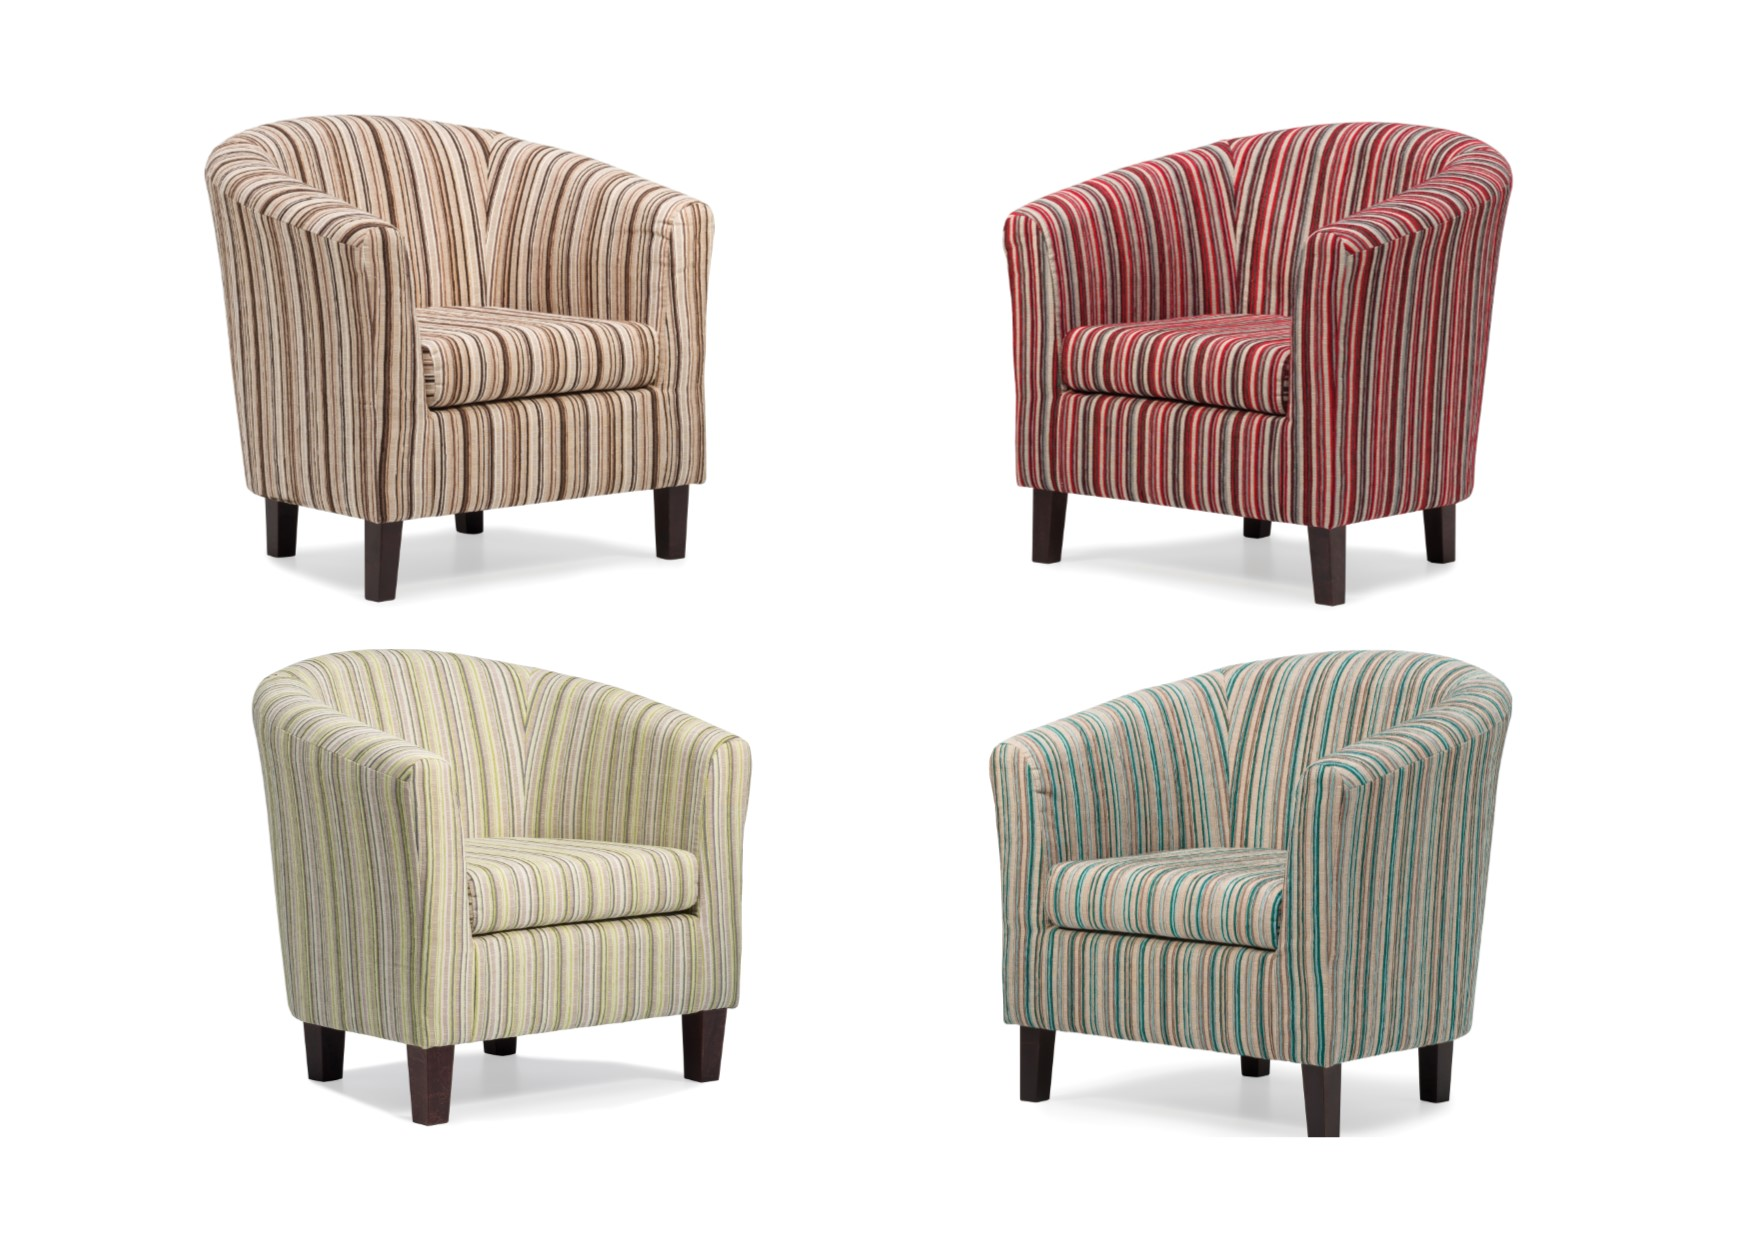 Red Striped Chair Dorset Stripe Tub Chair Available In Red Chocolate